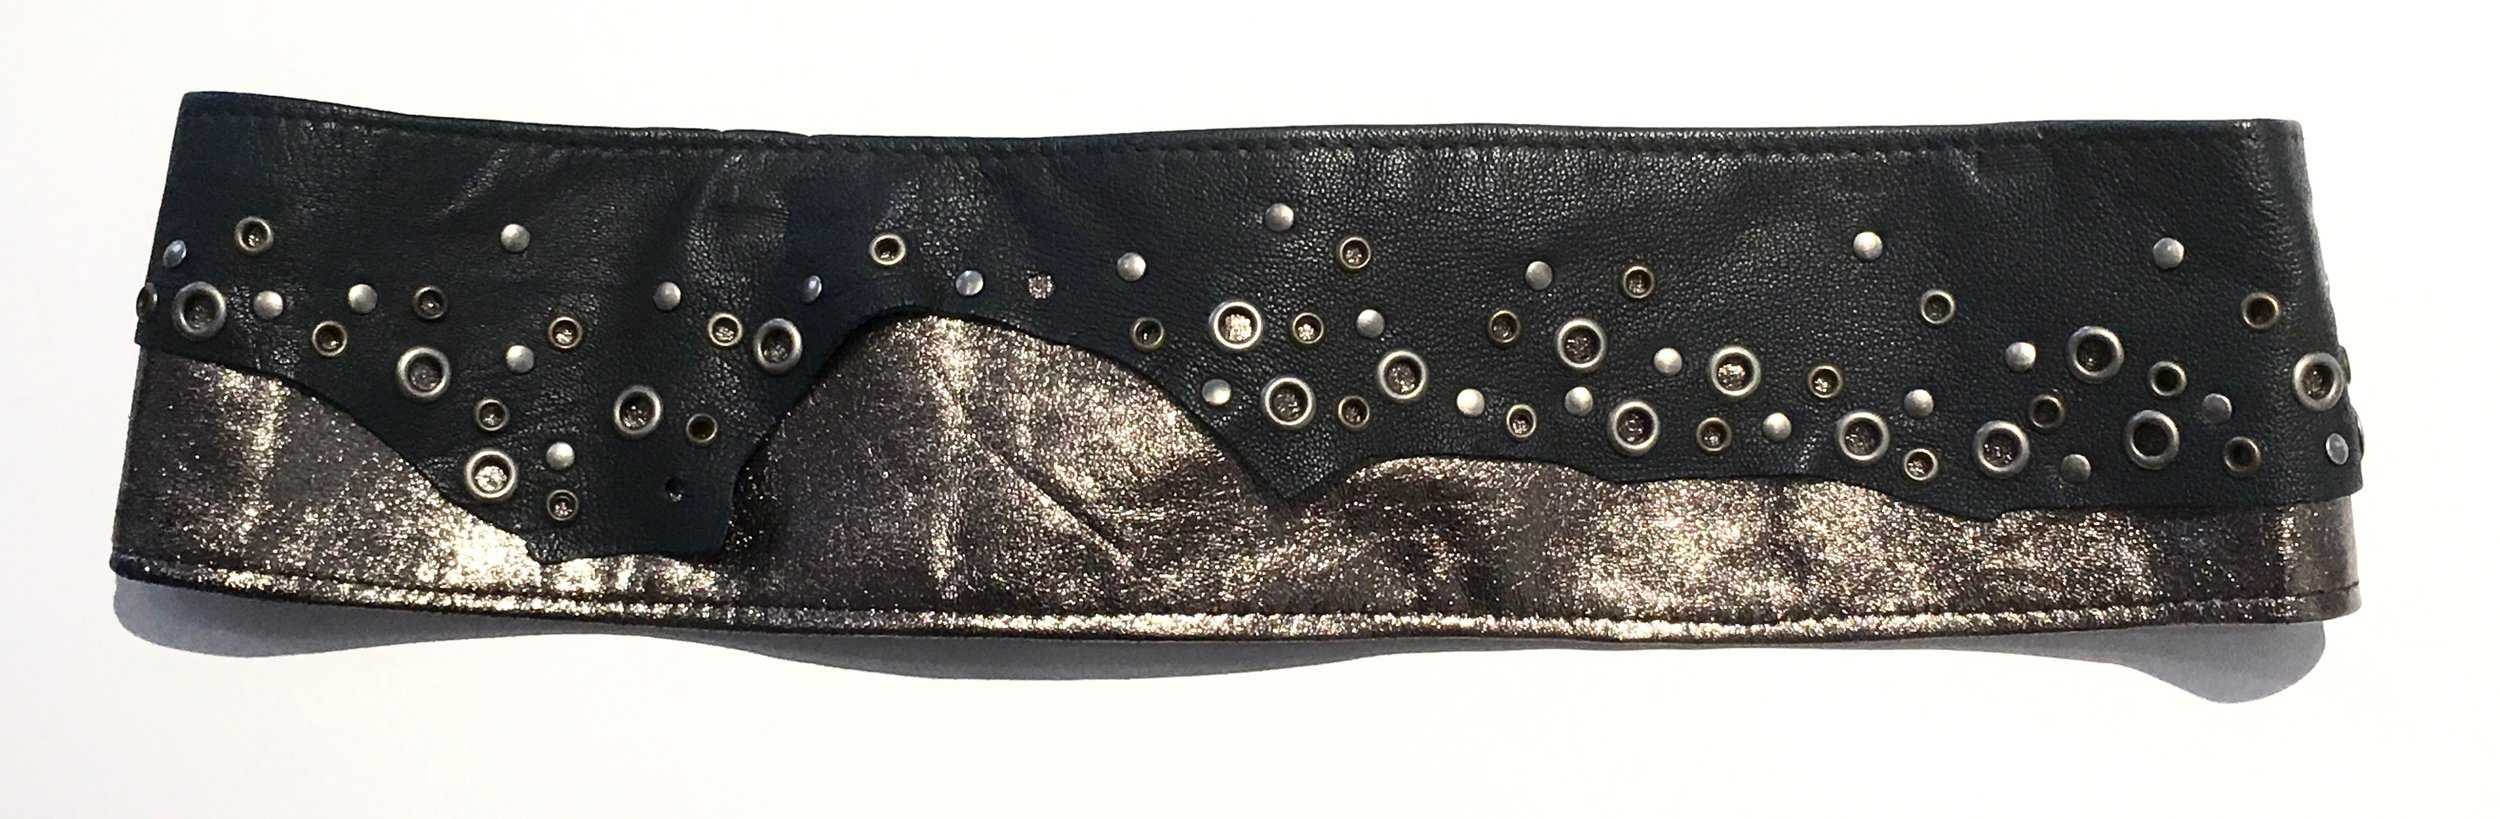 Black and bronze metallic lambskin with antiques brass and nickel metal work.  Brass ring with adjustable velcro closure. Back view..jpg